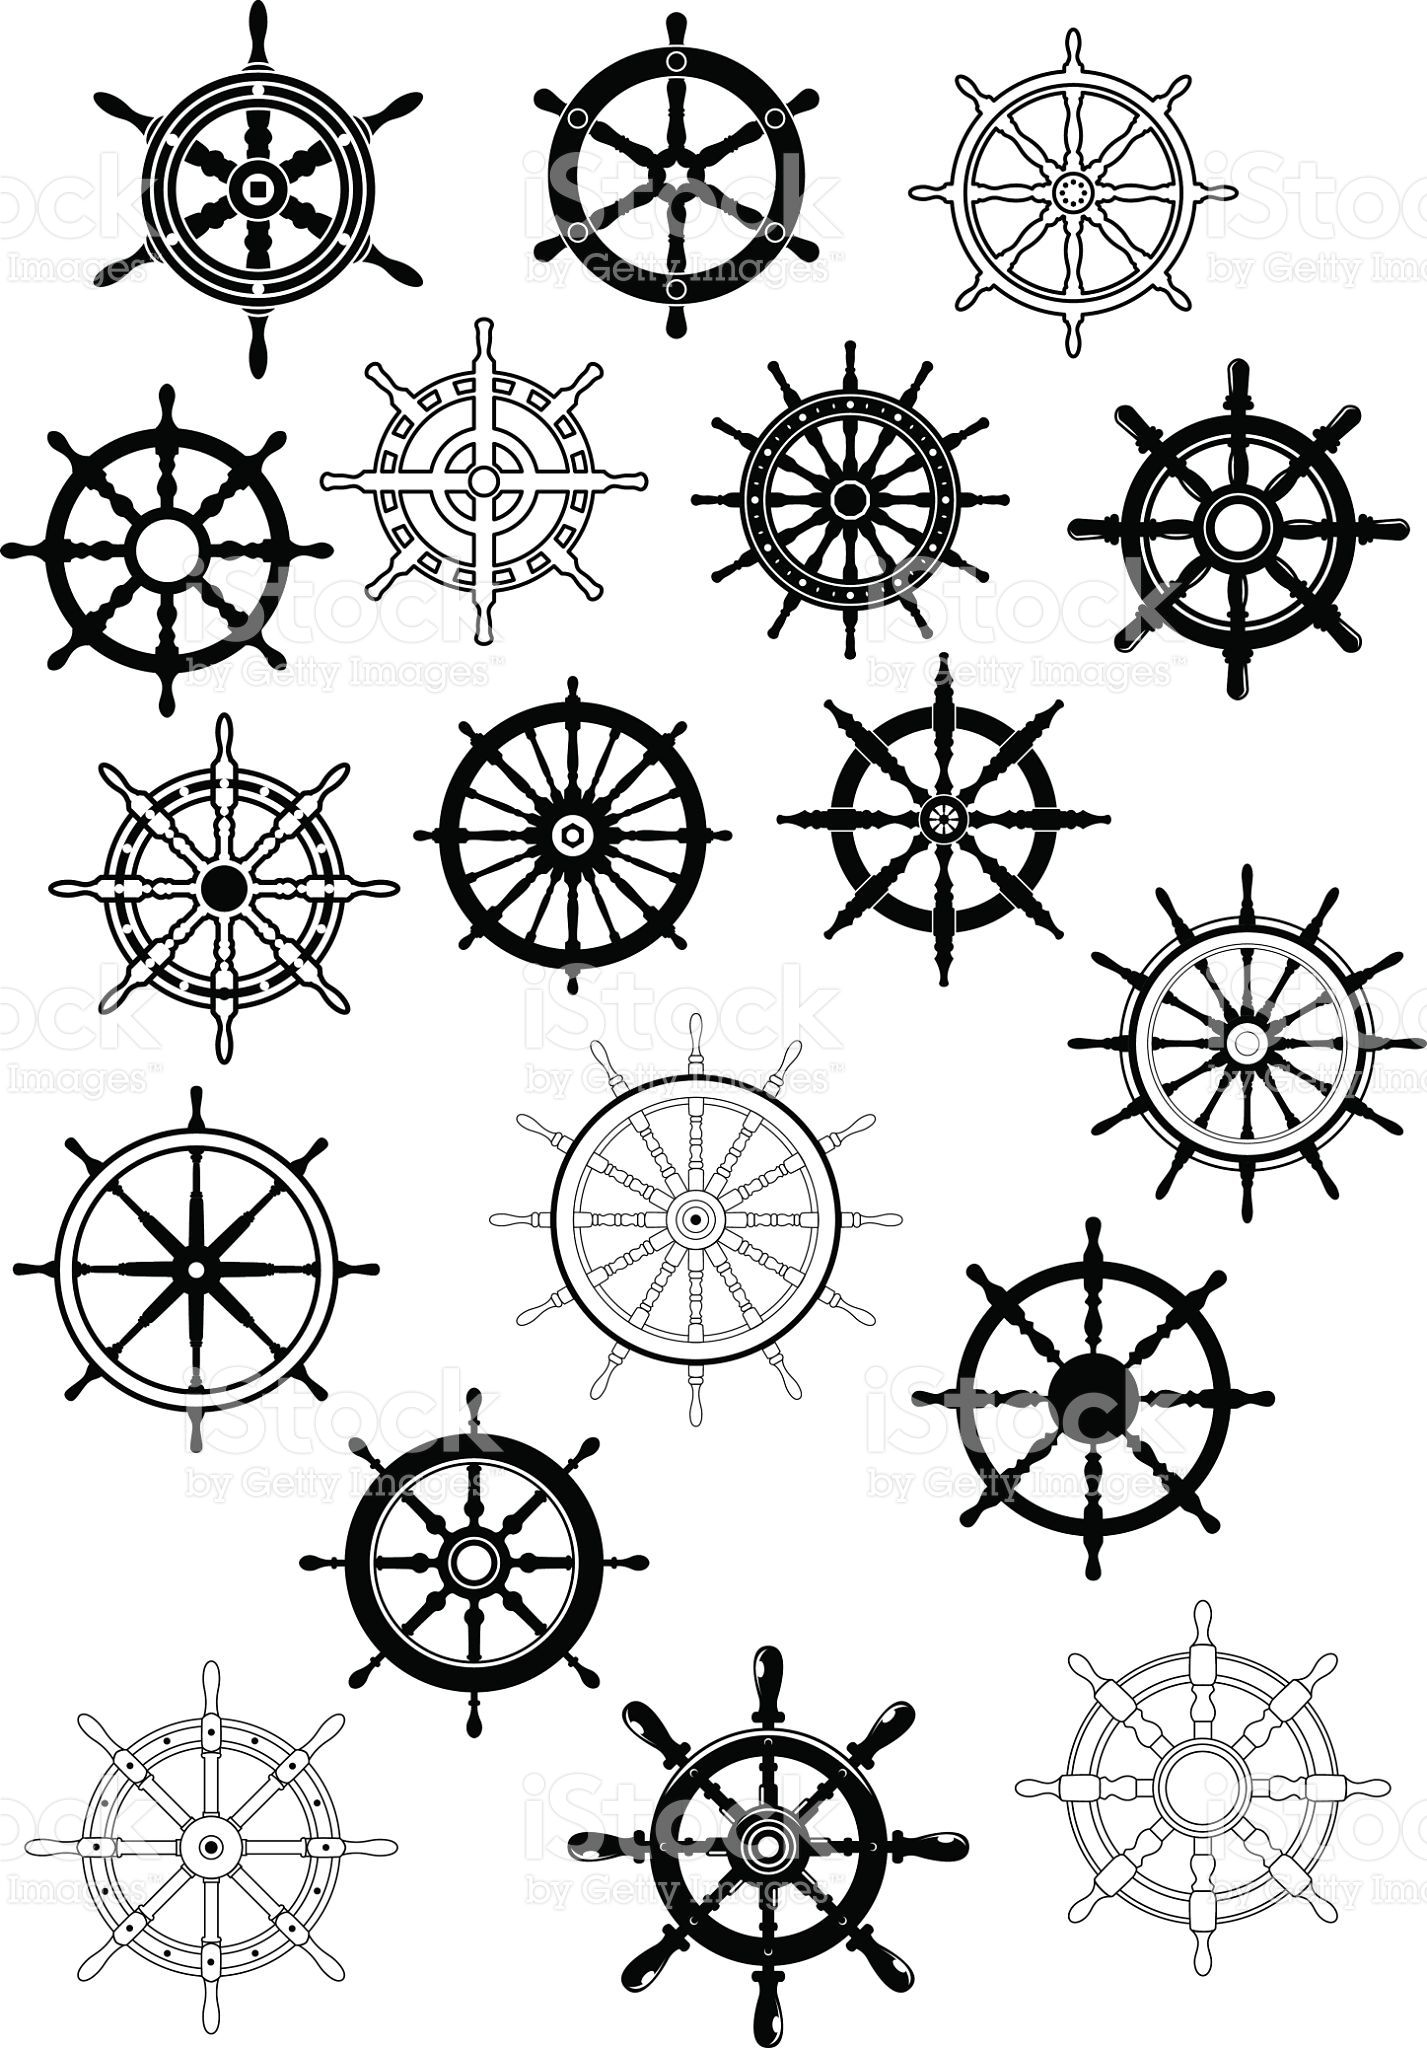 Ship Steering Wheels In Retro Style For Nautical And